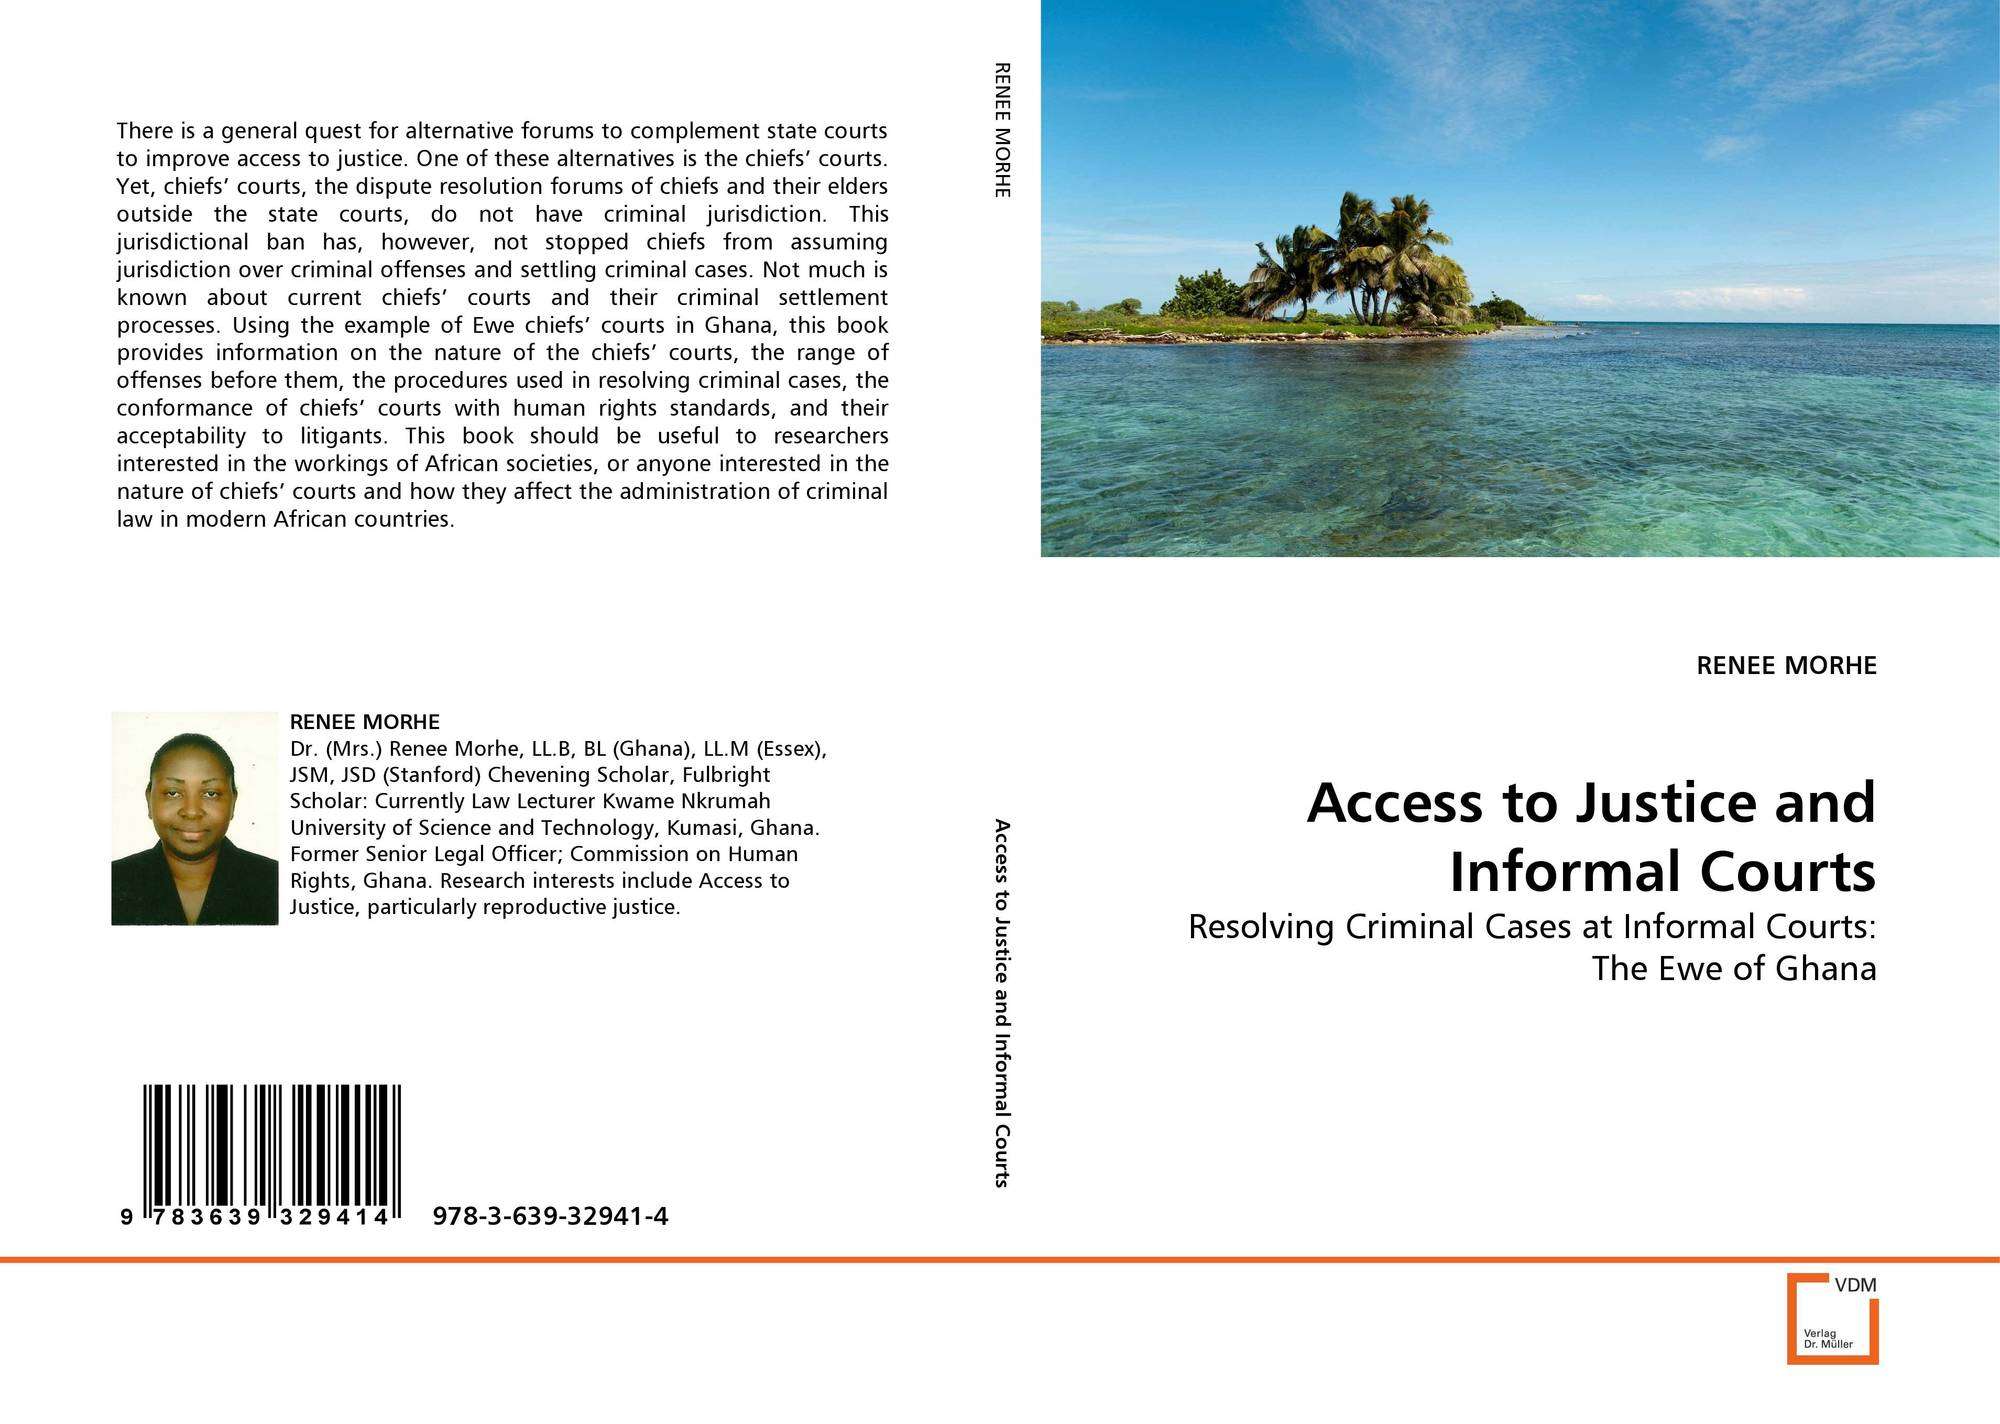 access to justice Volume 1 looks at the accessibility of the justice system, the use of alternative forms of dispute resolution, the regulation of the legal profession and the structure and operations of ombudsmen, tribunals and courts.